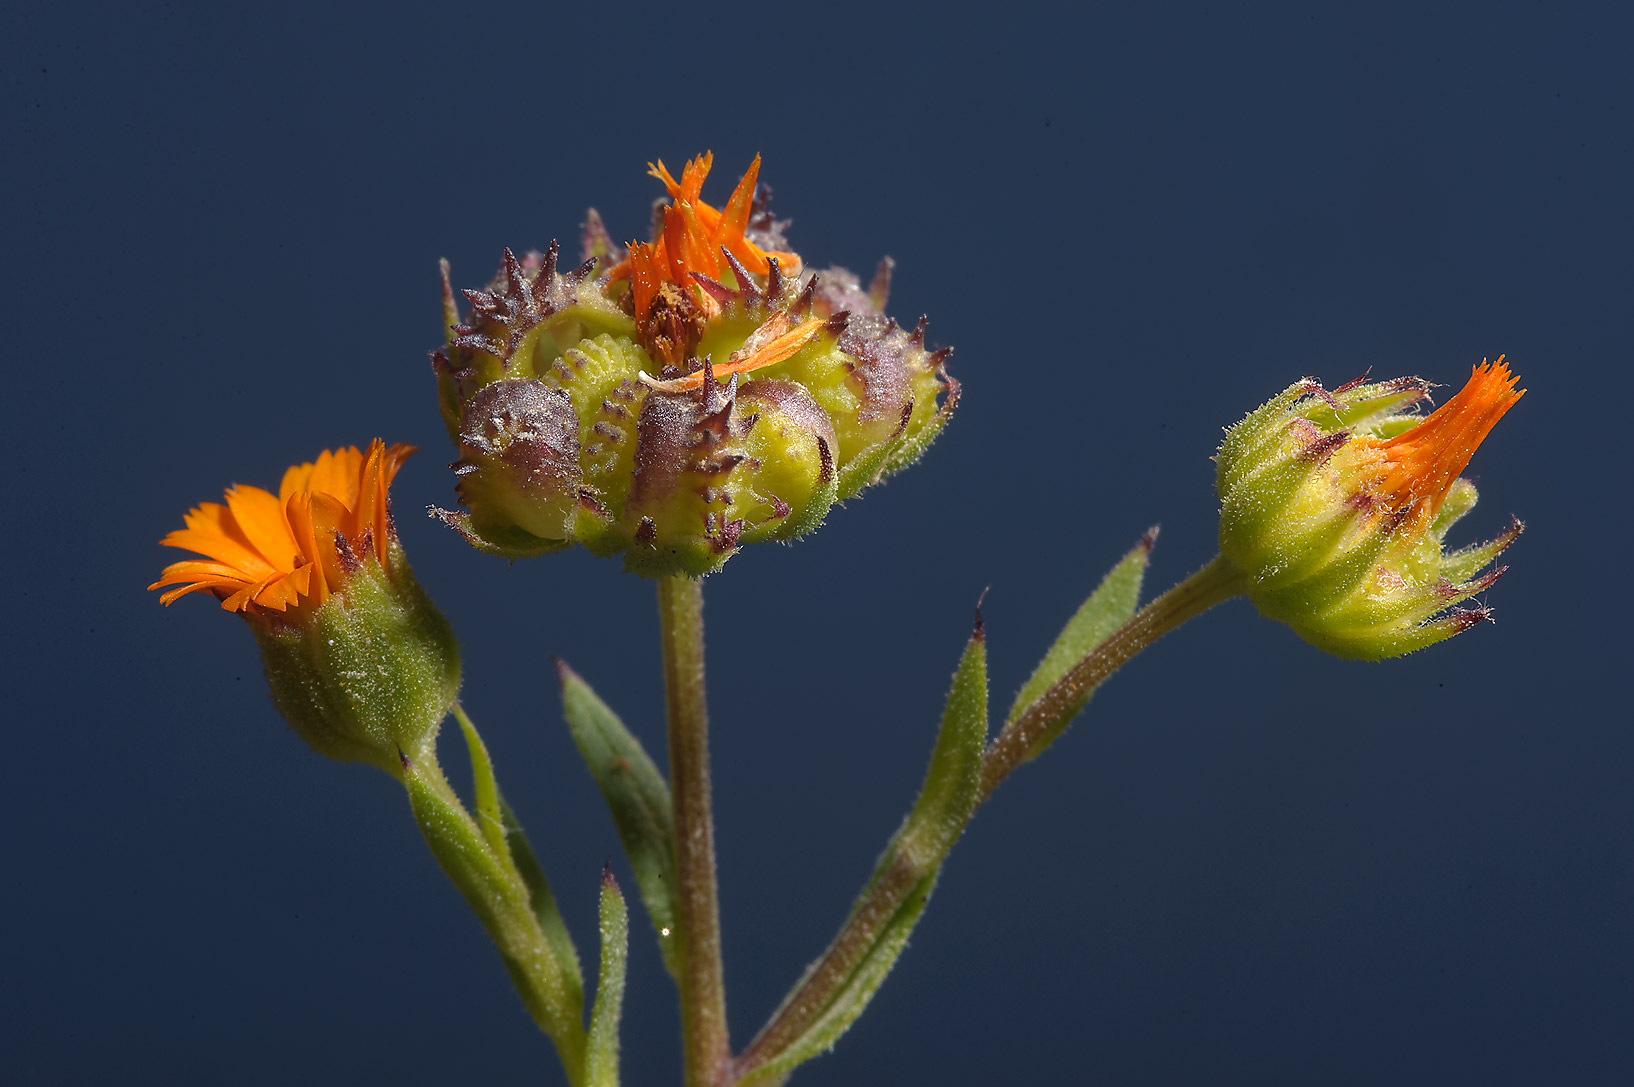 Flowers and seeds of Field Marigold (Calendula...farms area, in north-western Qatar